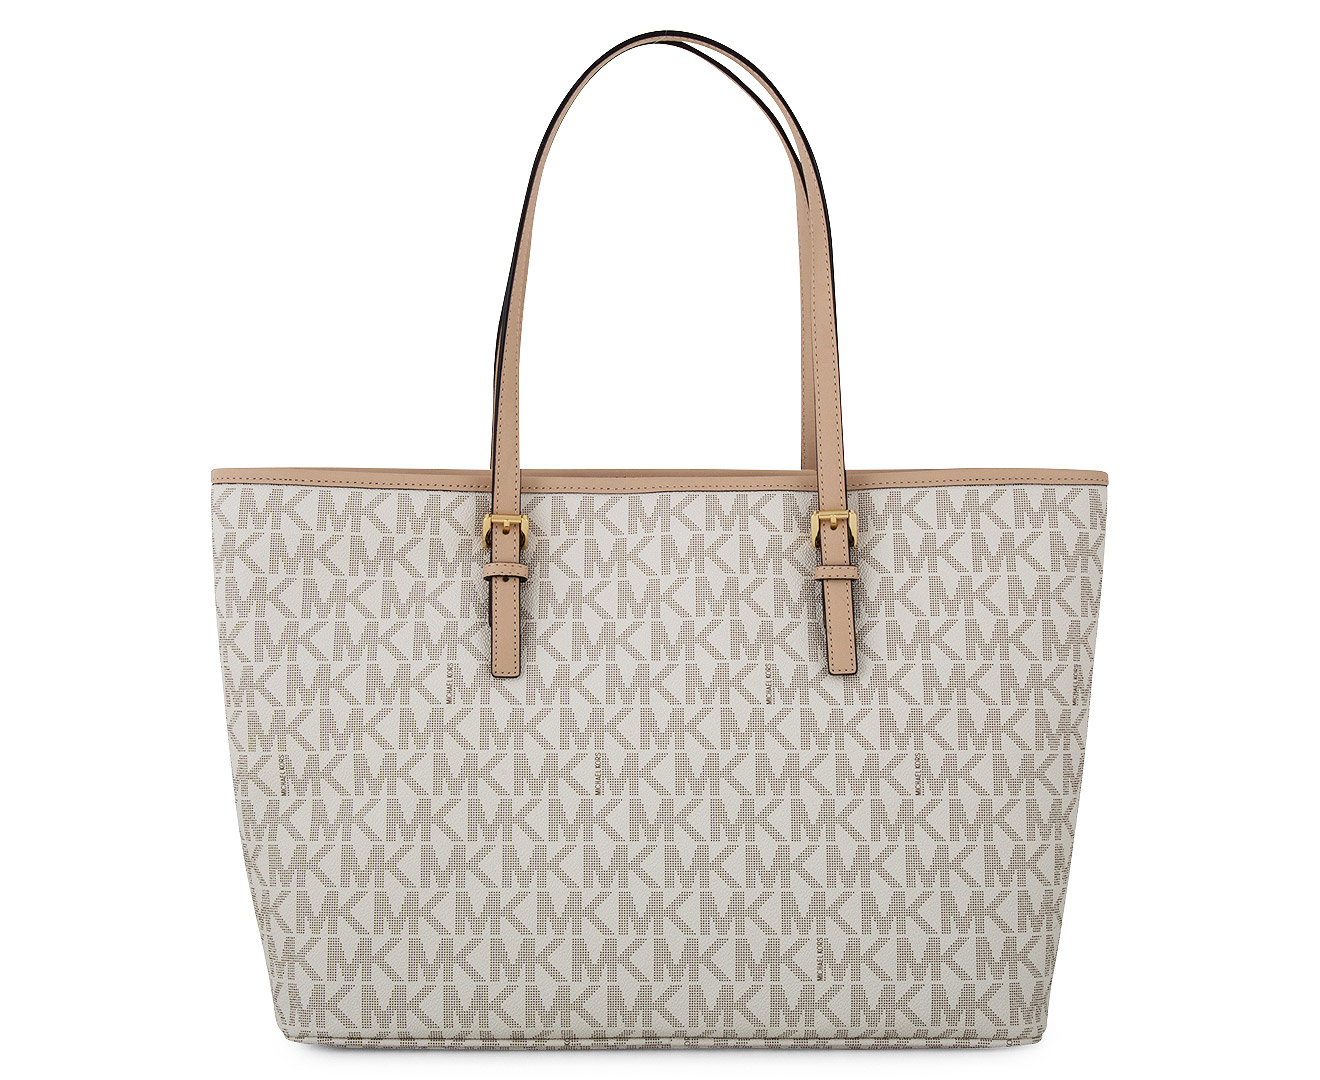 Bolsa Michael Kors Tote Vanilla : Michael kors jet set large logo tote bag vanilla great